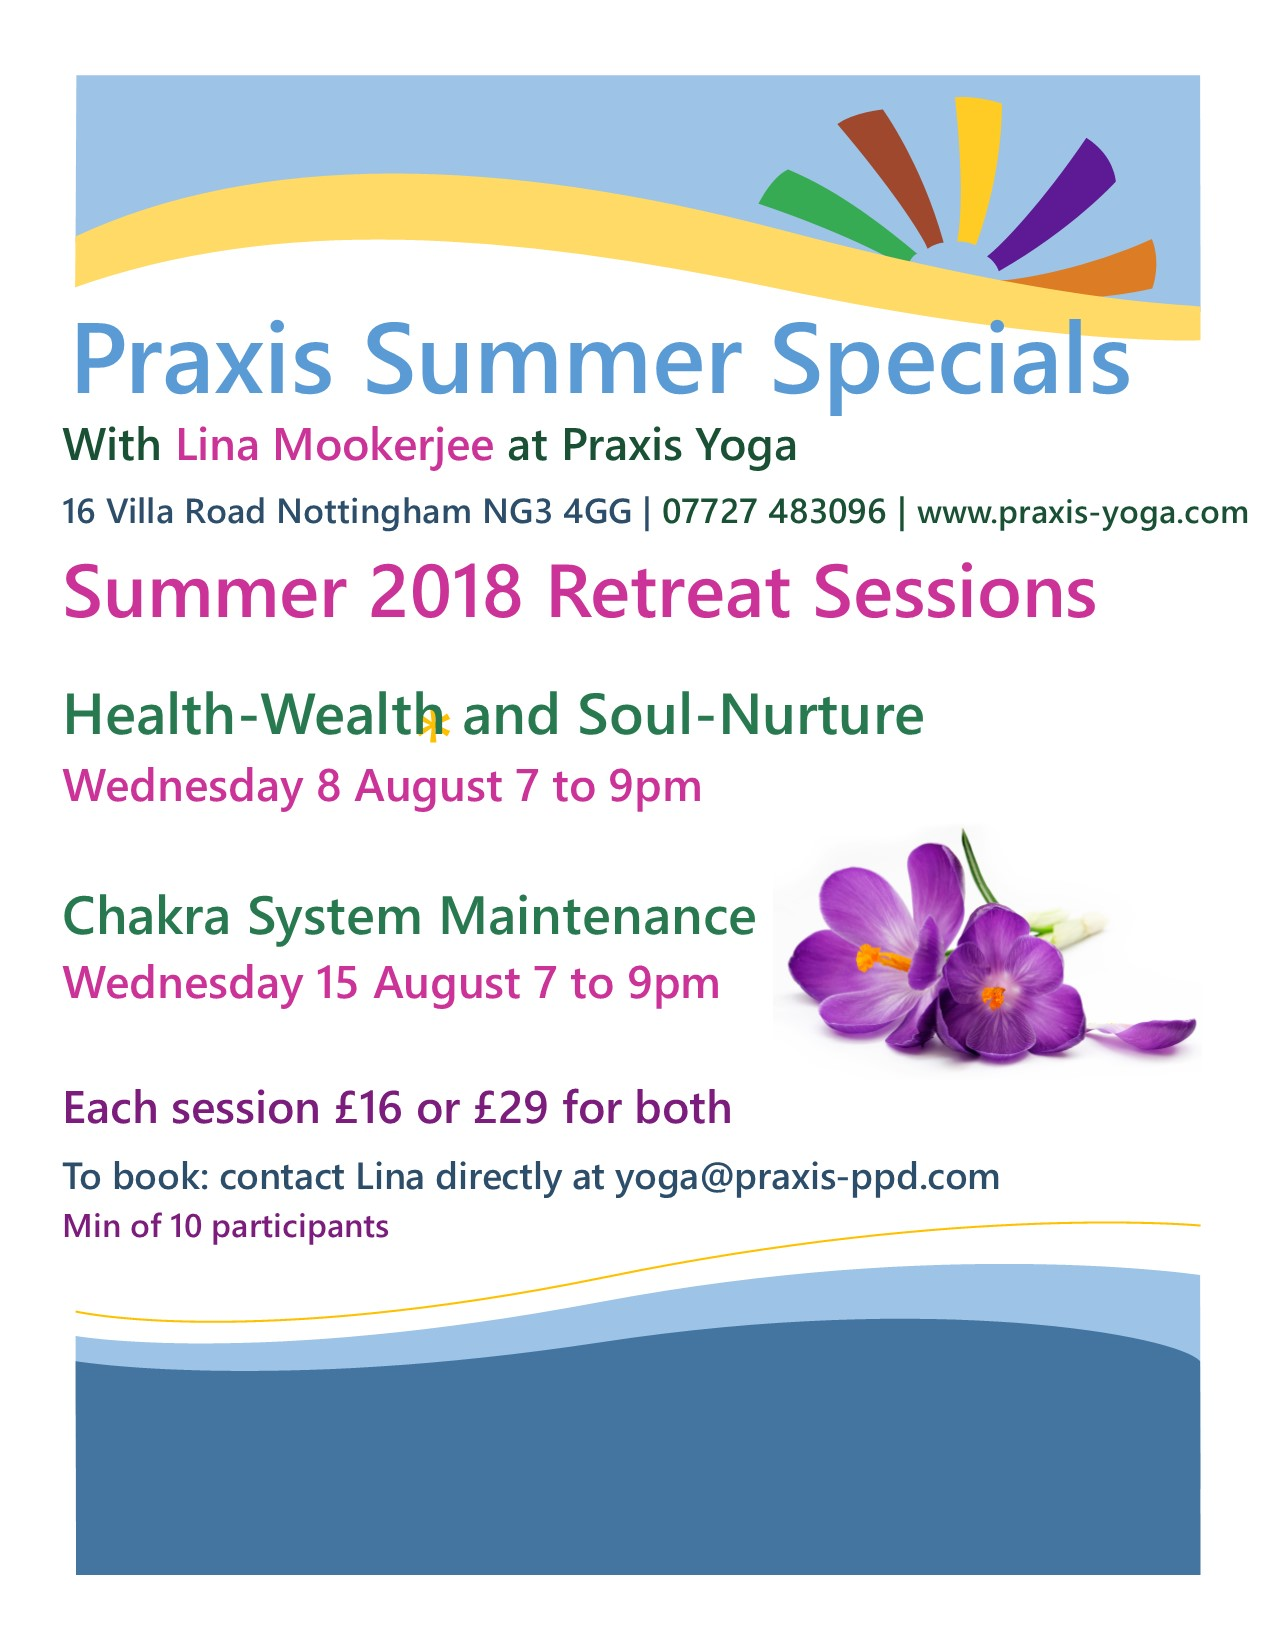 Praxis 2018 Summer Special